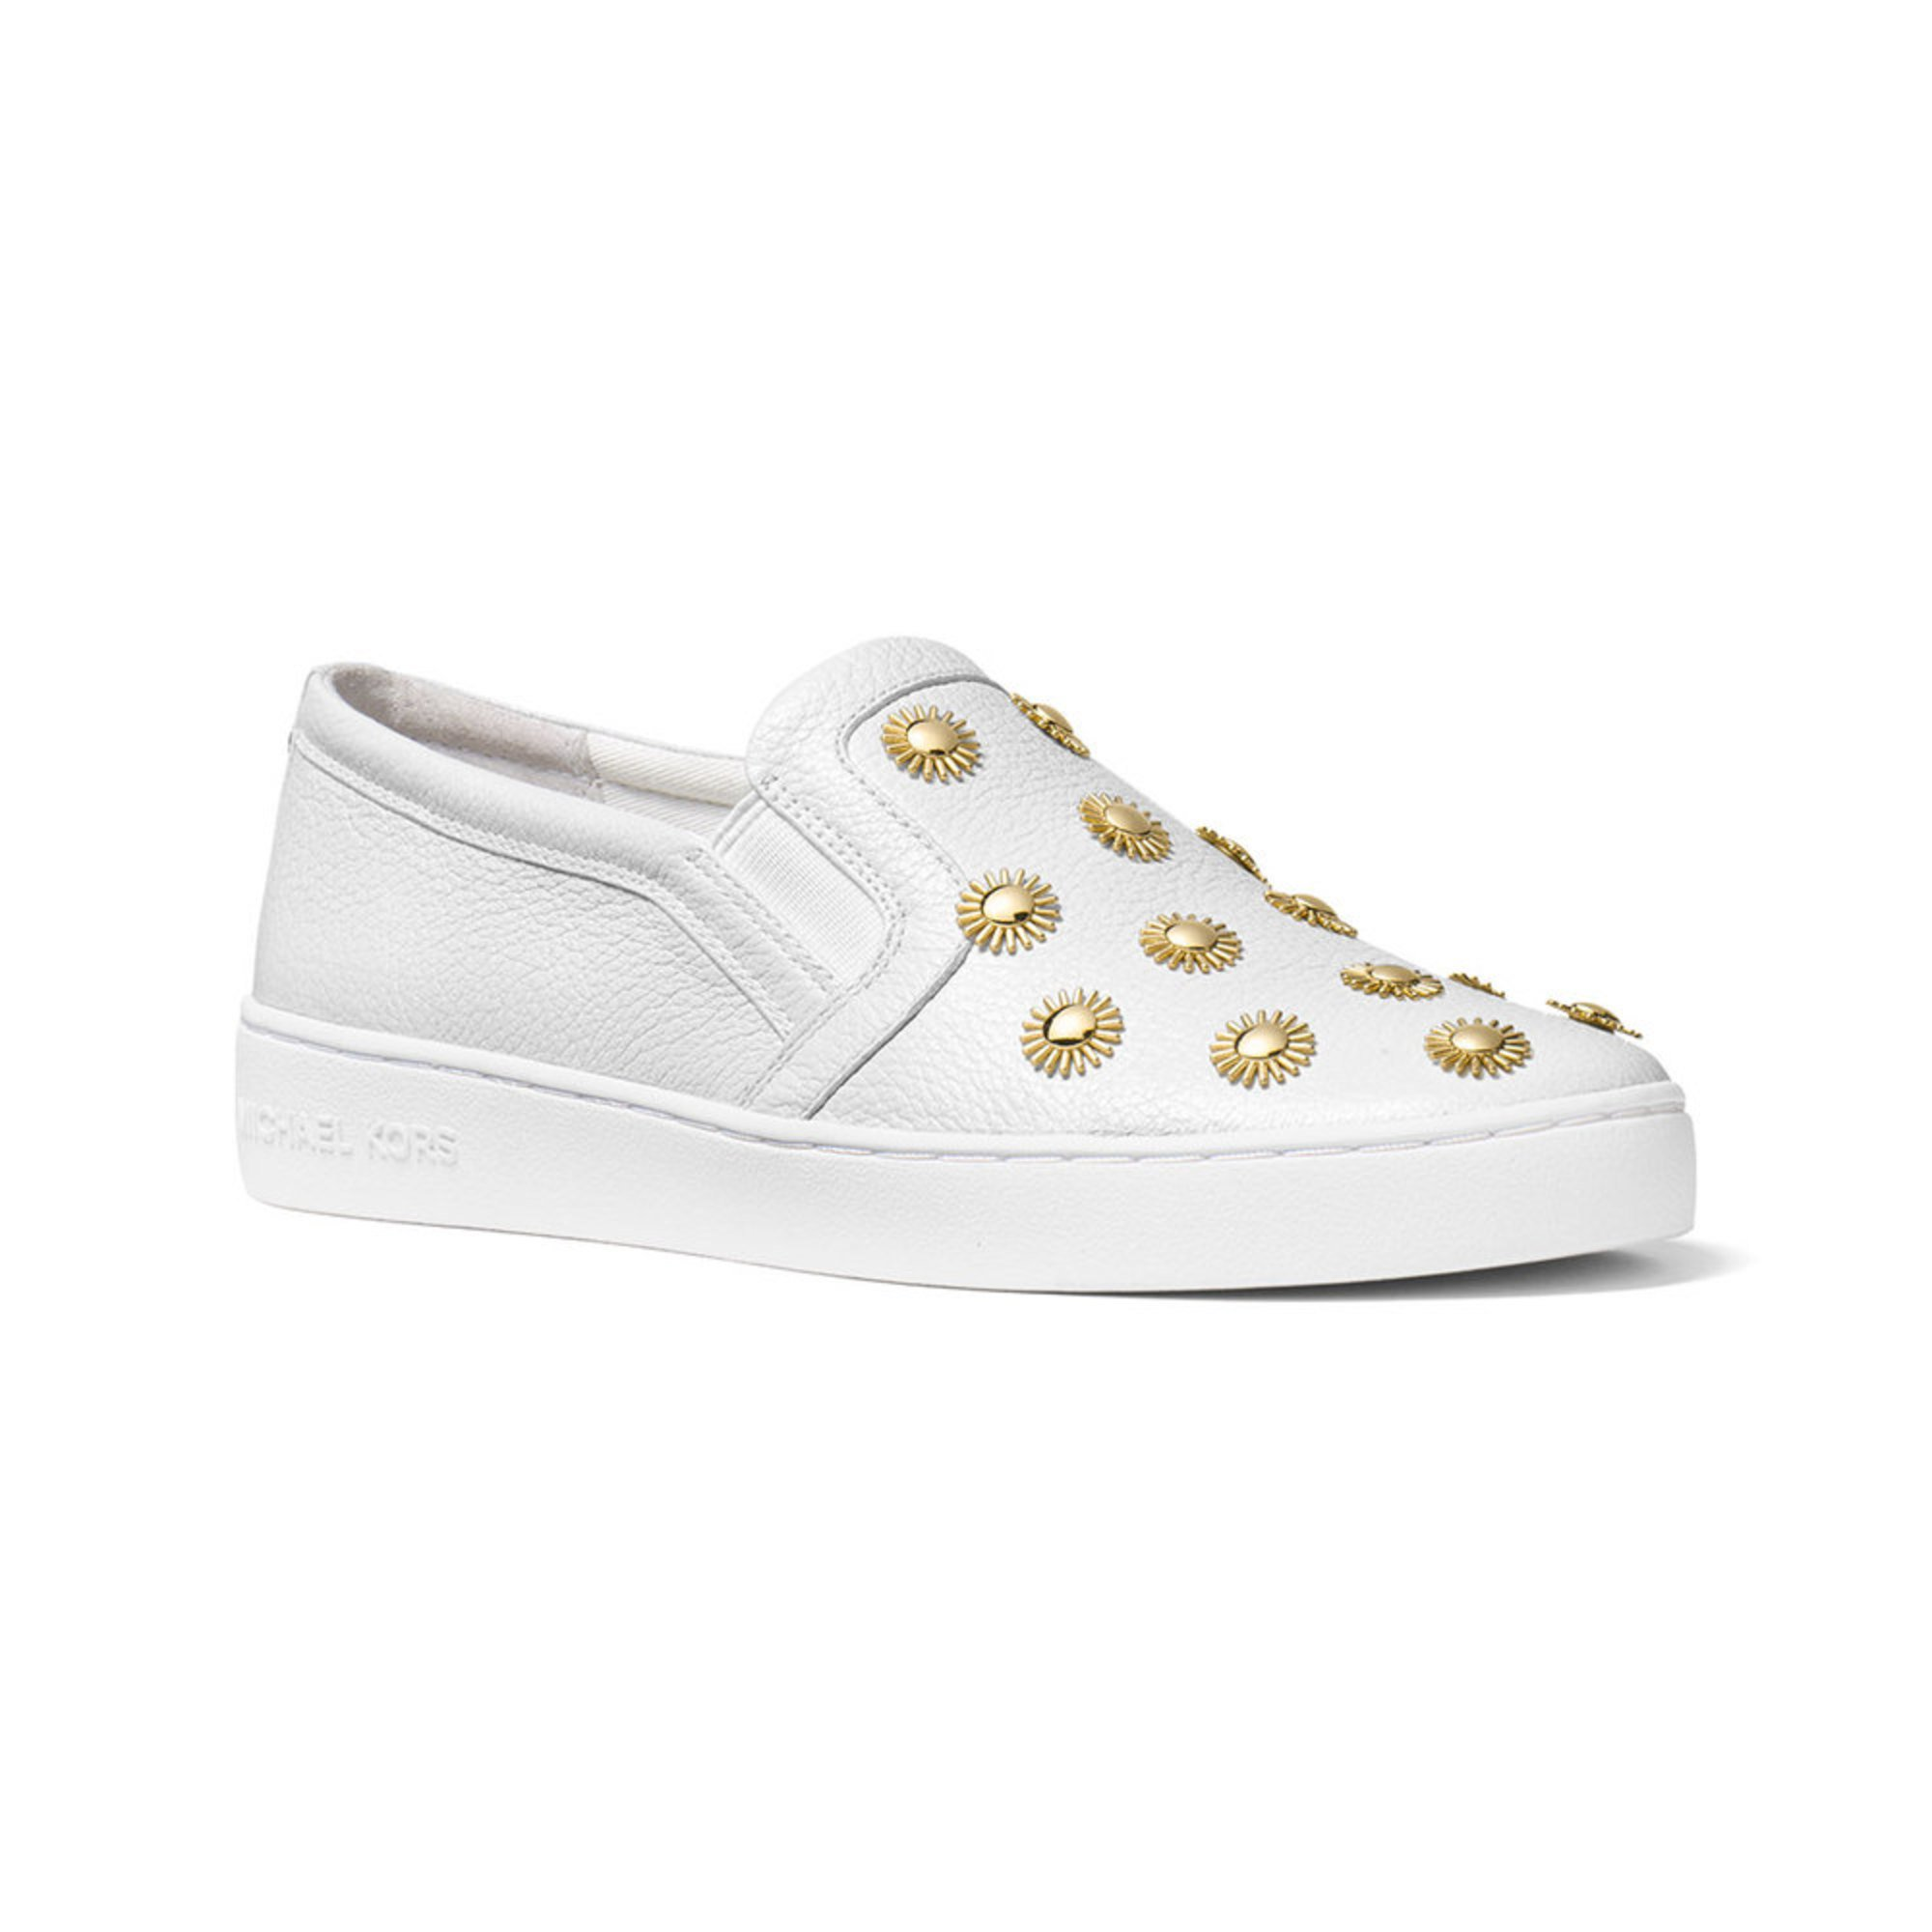 michael kors leo women 39 s slip on sneaker optic white shoes shop your navy exchange. Black Bedroom Furniture Sets. Home Design Ideas